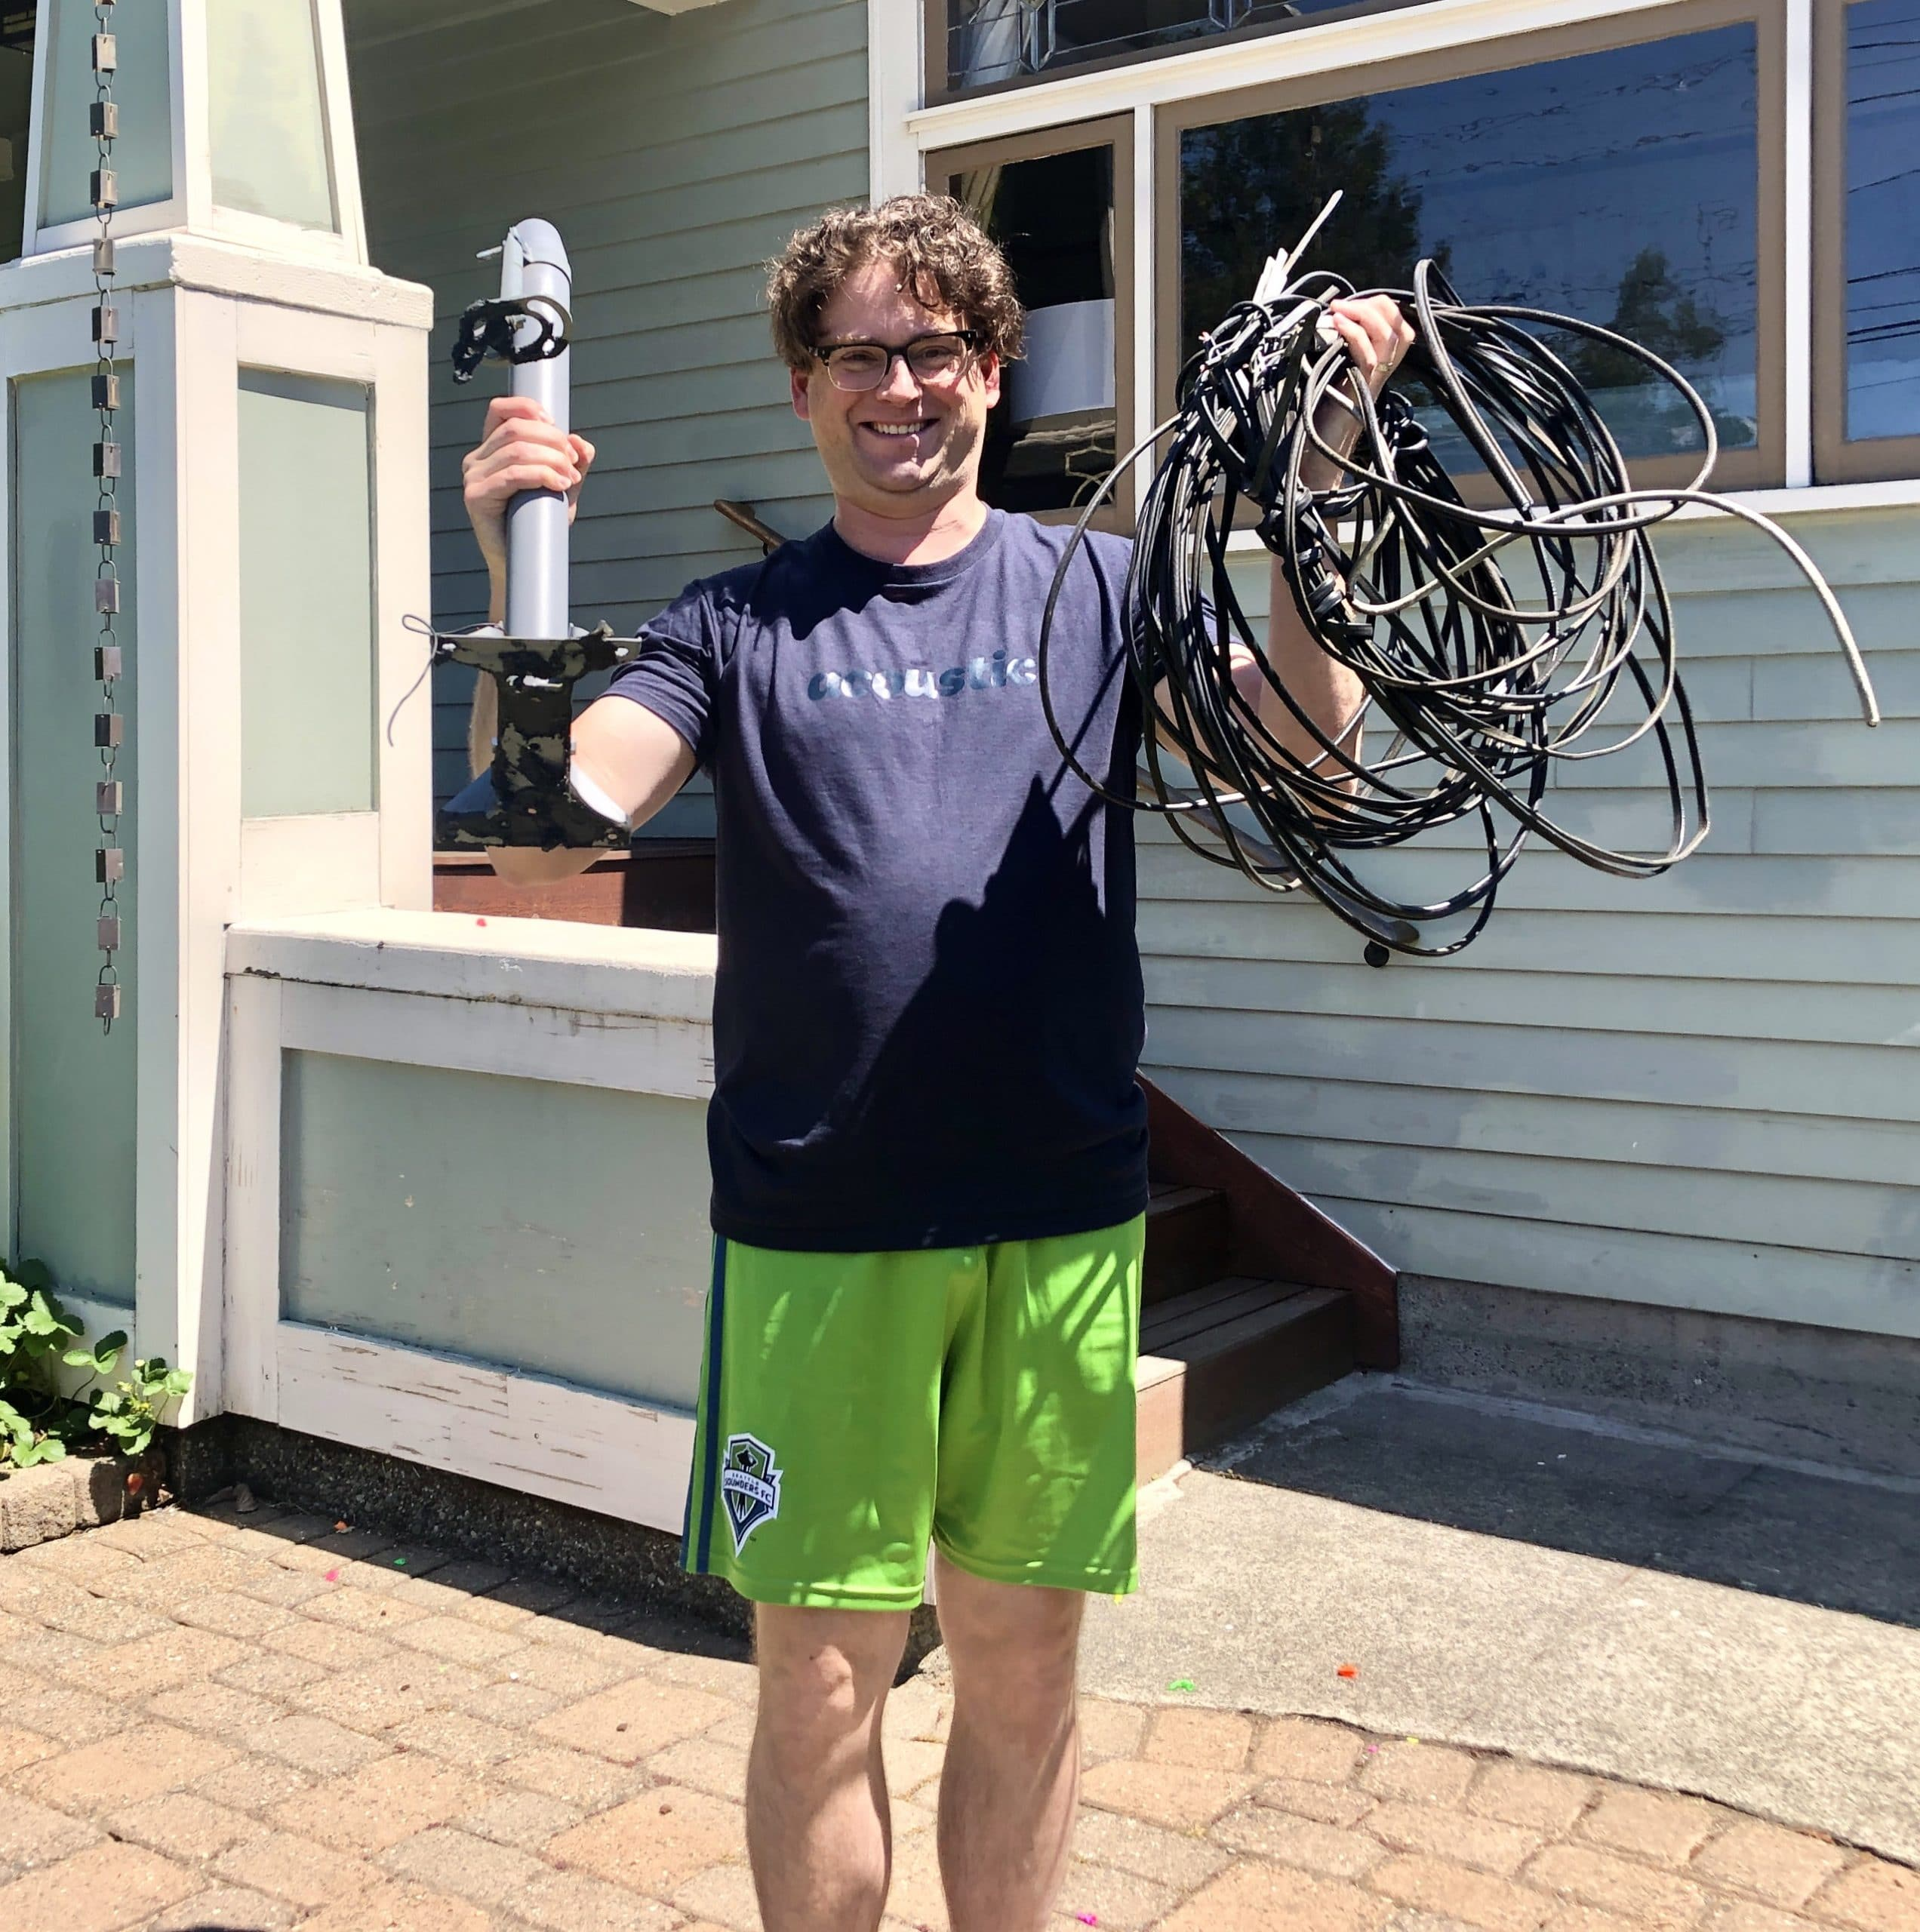 A happy man holding up wires we removed from his home